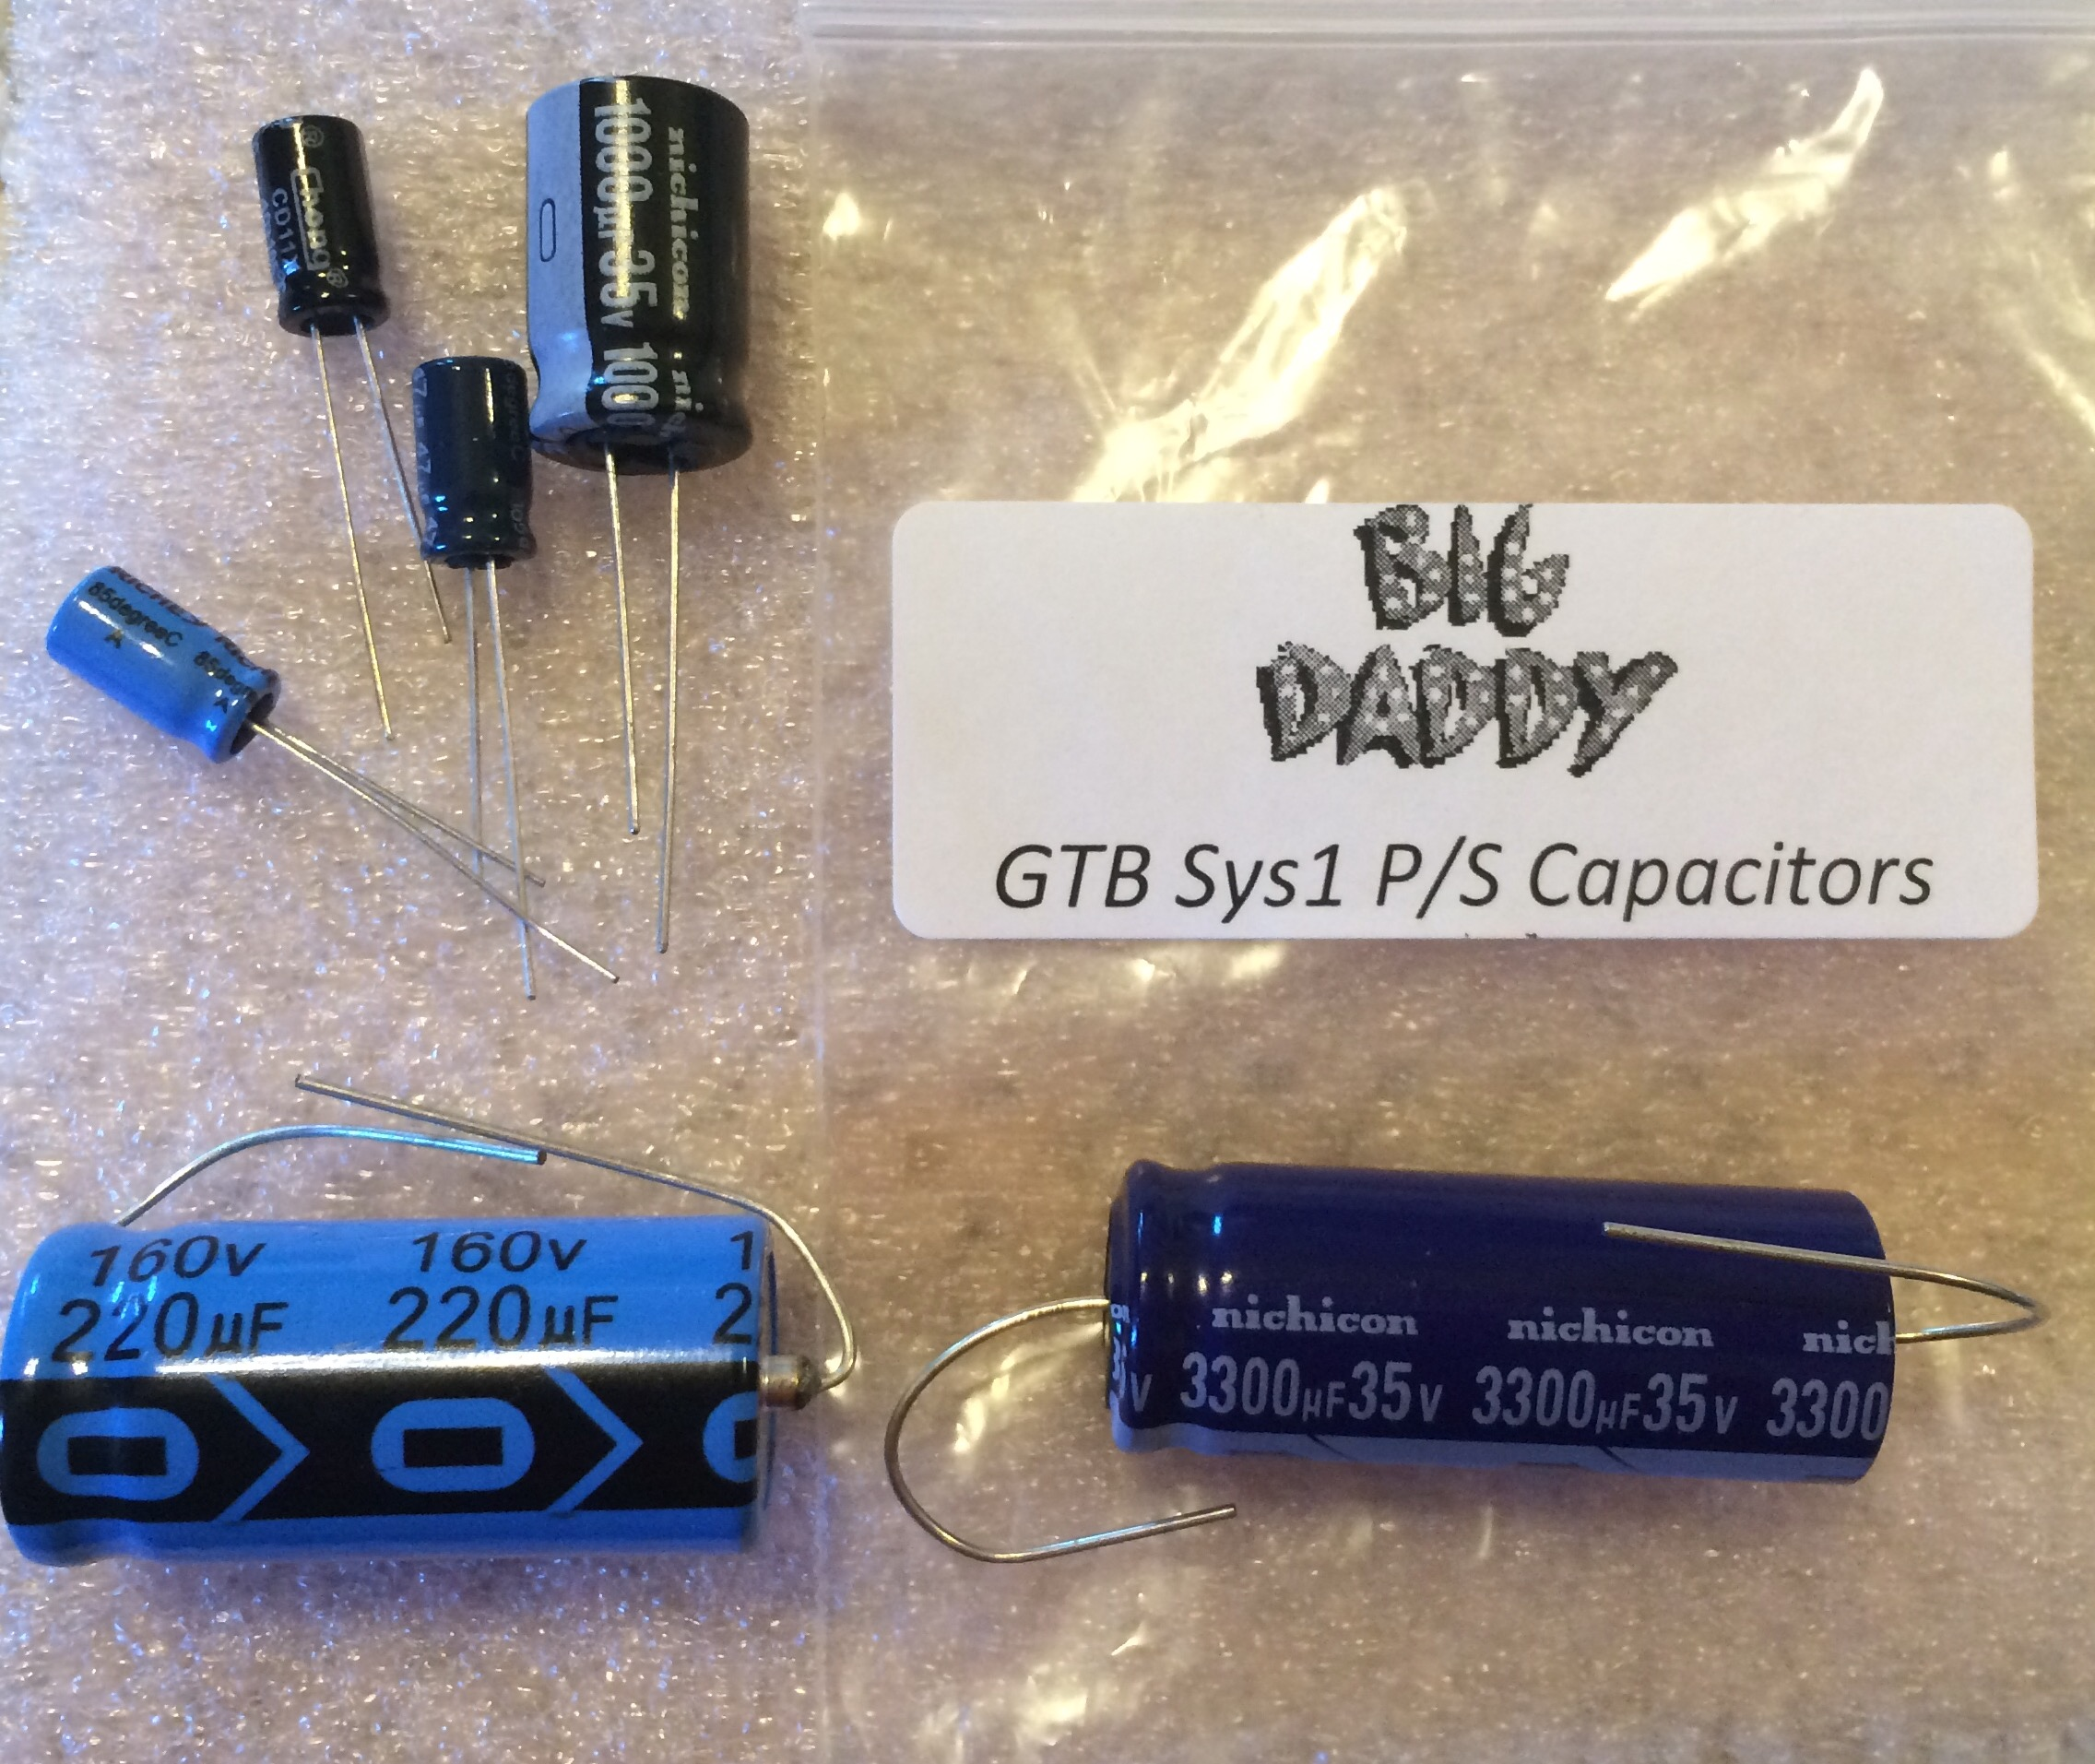 Big Daddy S Gottlieb Pinball Repair Kits